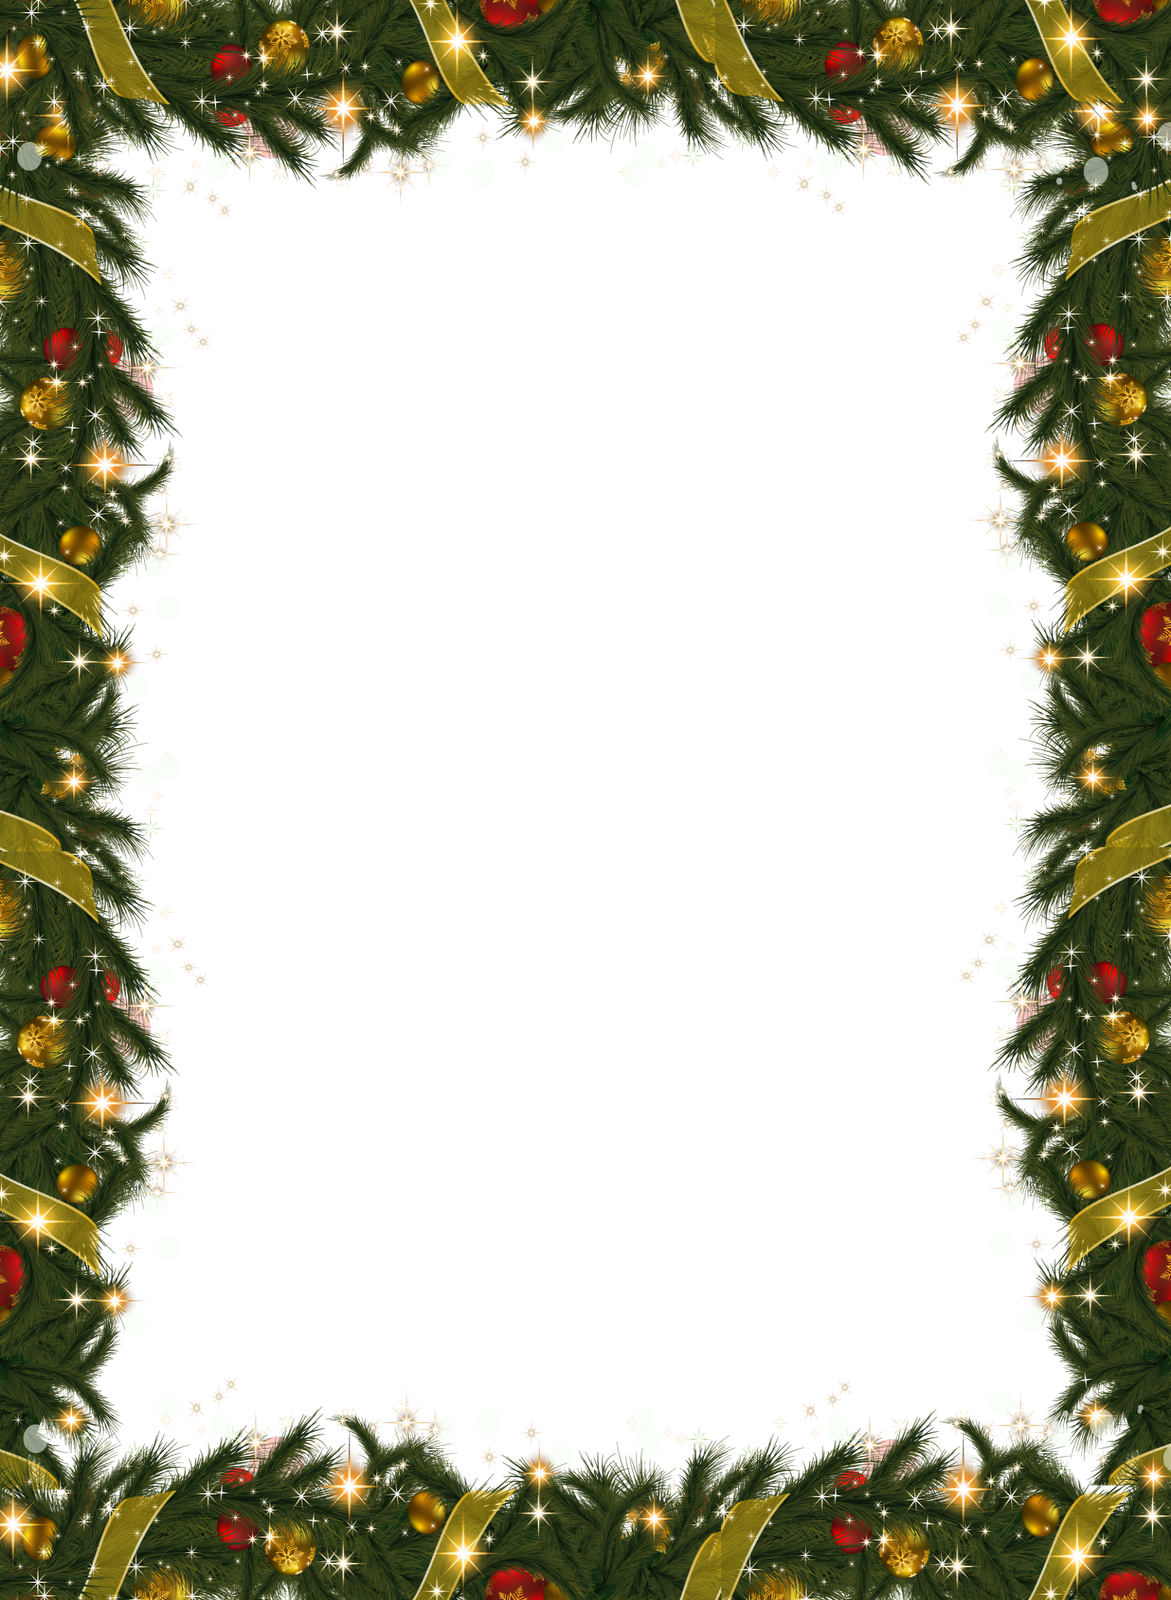 Christmas garland border png. Holiday frame with gallery